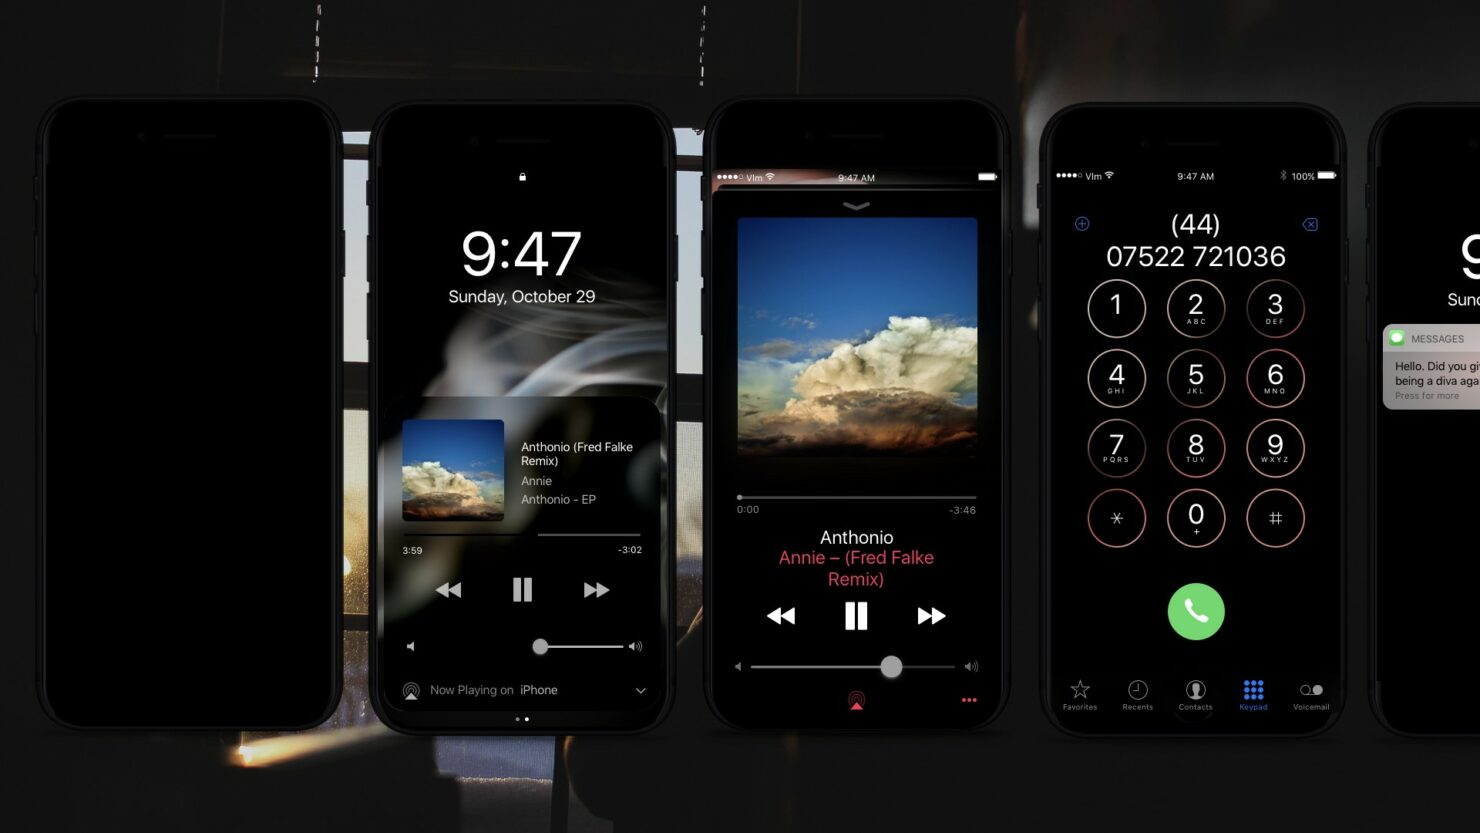 oled-iphone-8-concept-3